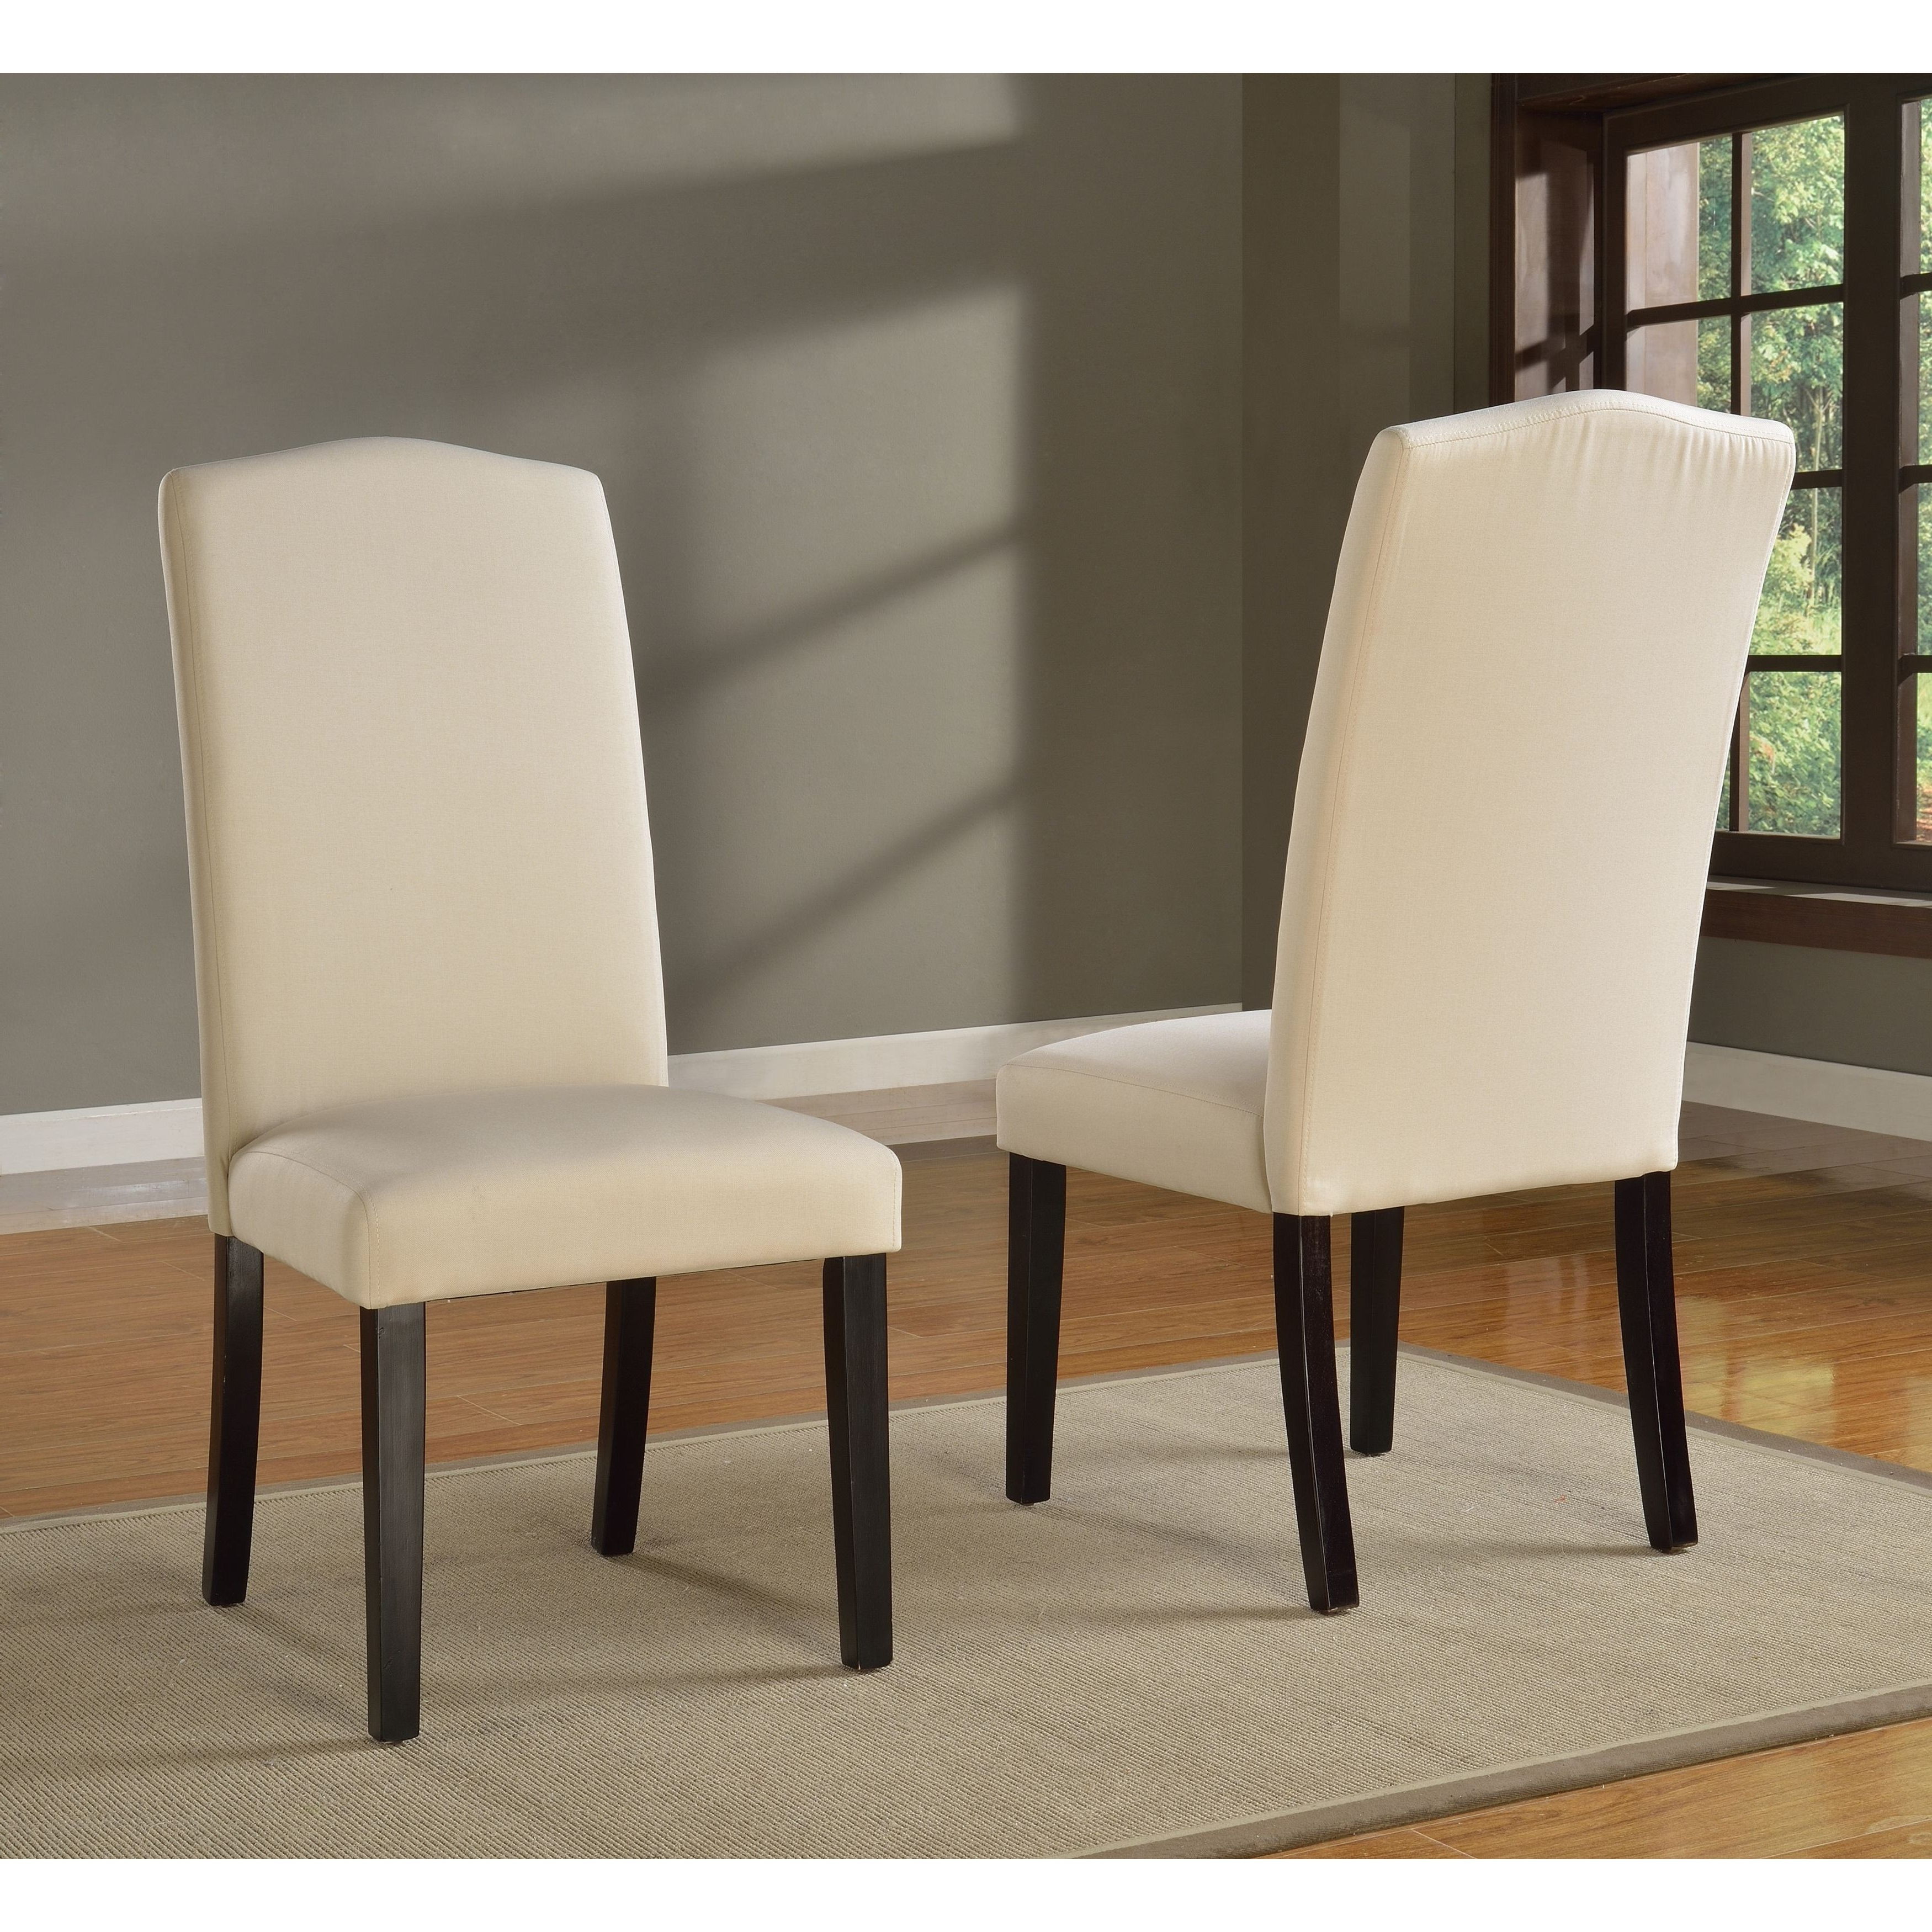 Trendy Garten Marble Skirted Side Chairs Set Of 2 Inside Shop Domusindo Slipcovered Camelback Dining Chair (Set Of 2) – Free (View 17 of 20)